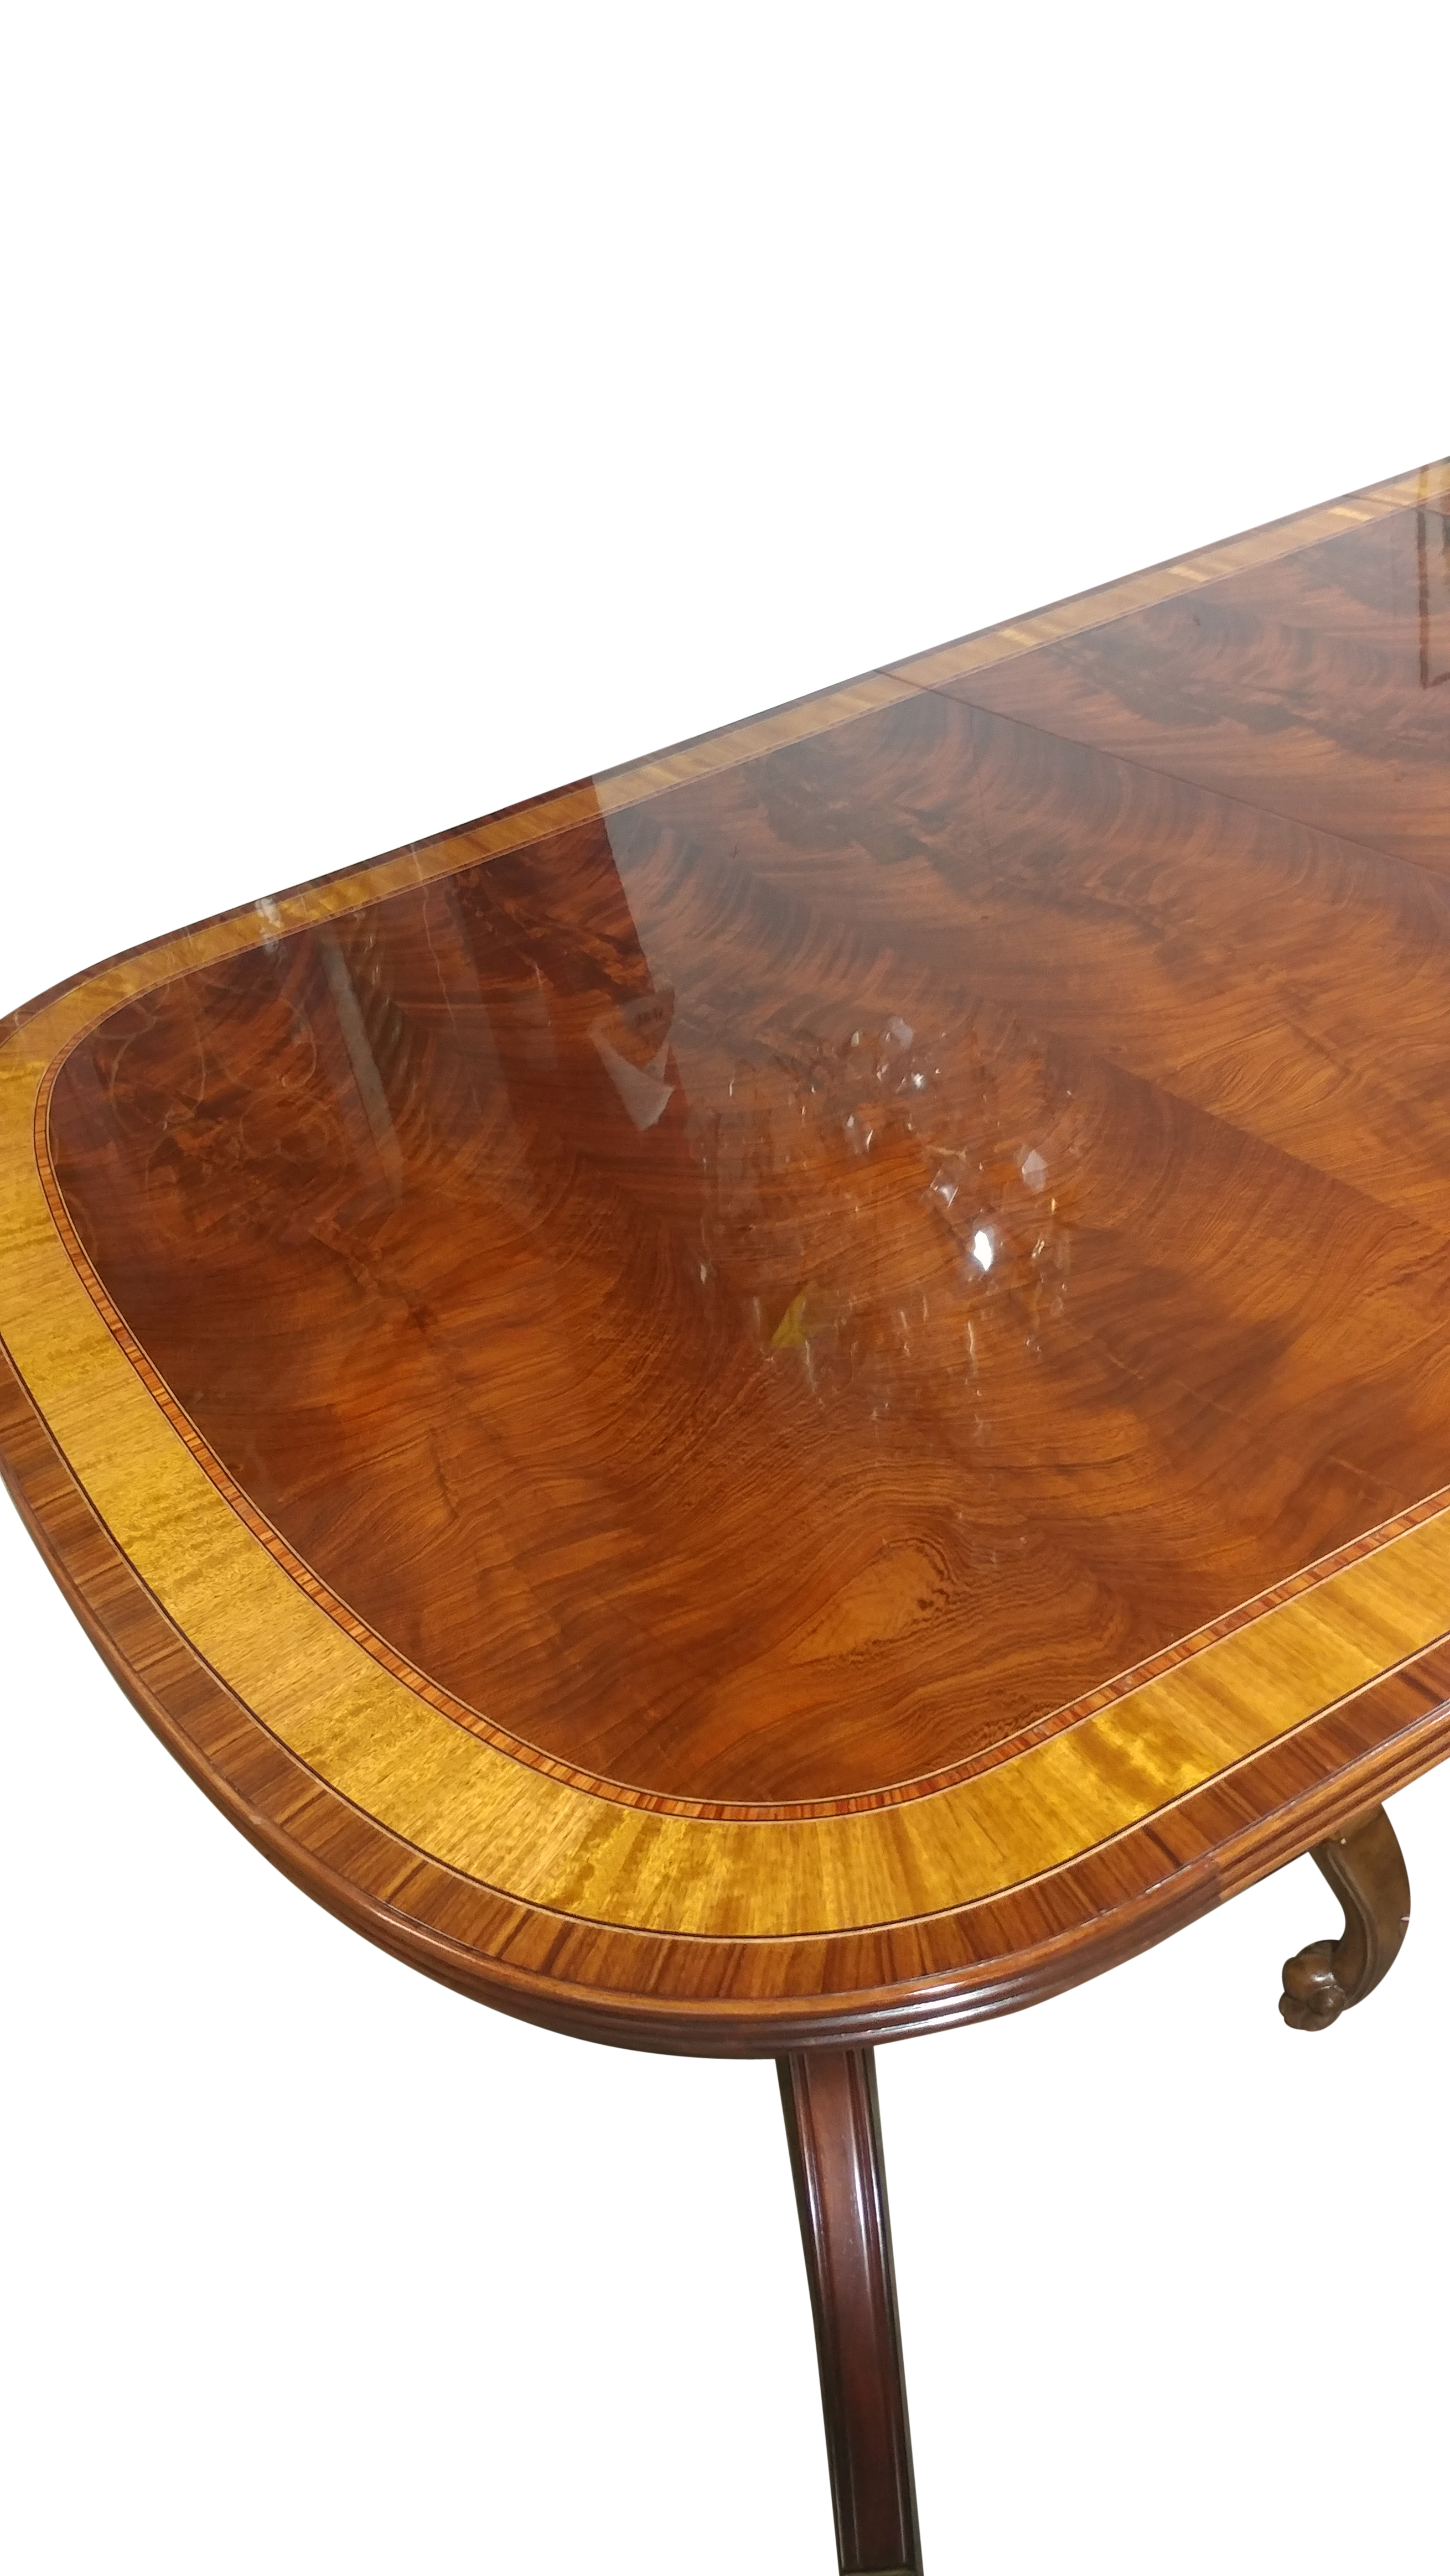 American Made Mahogany Dining Table, 12 ft. Long $12,000, LH-7-3L